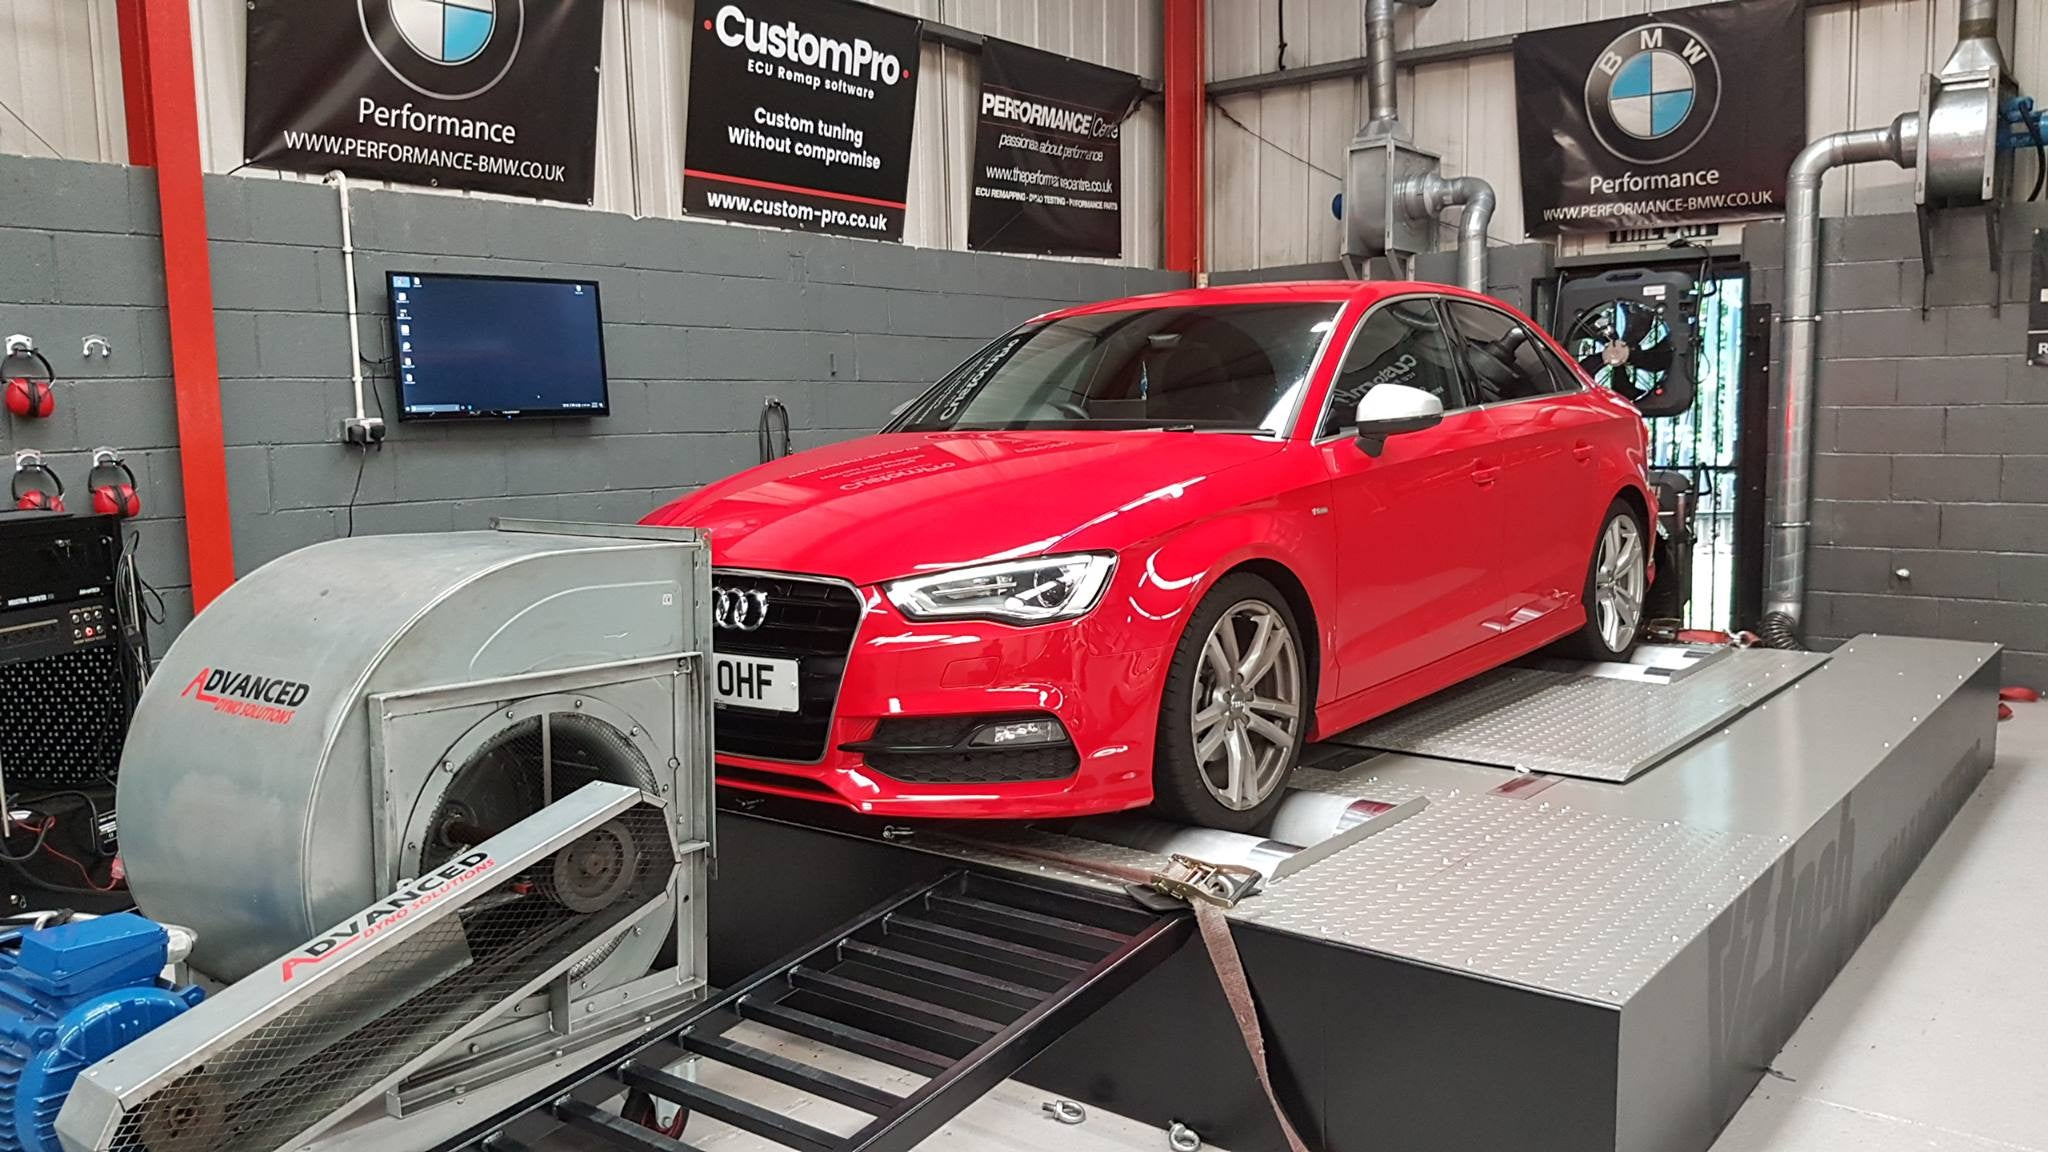 Audi A3 1.6 CR110 - CustomPro remap